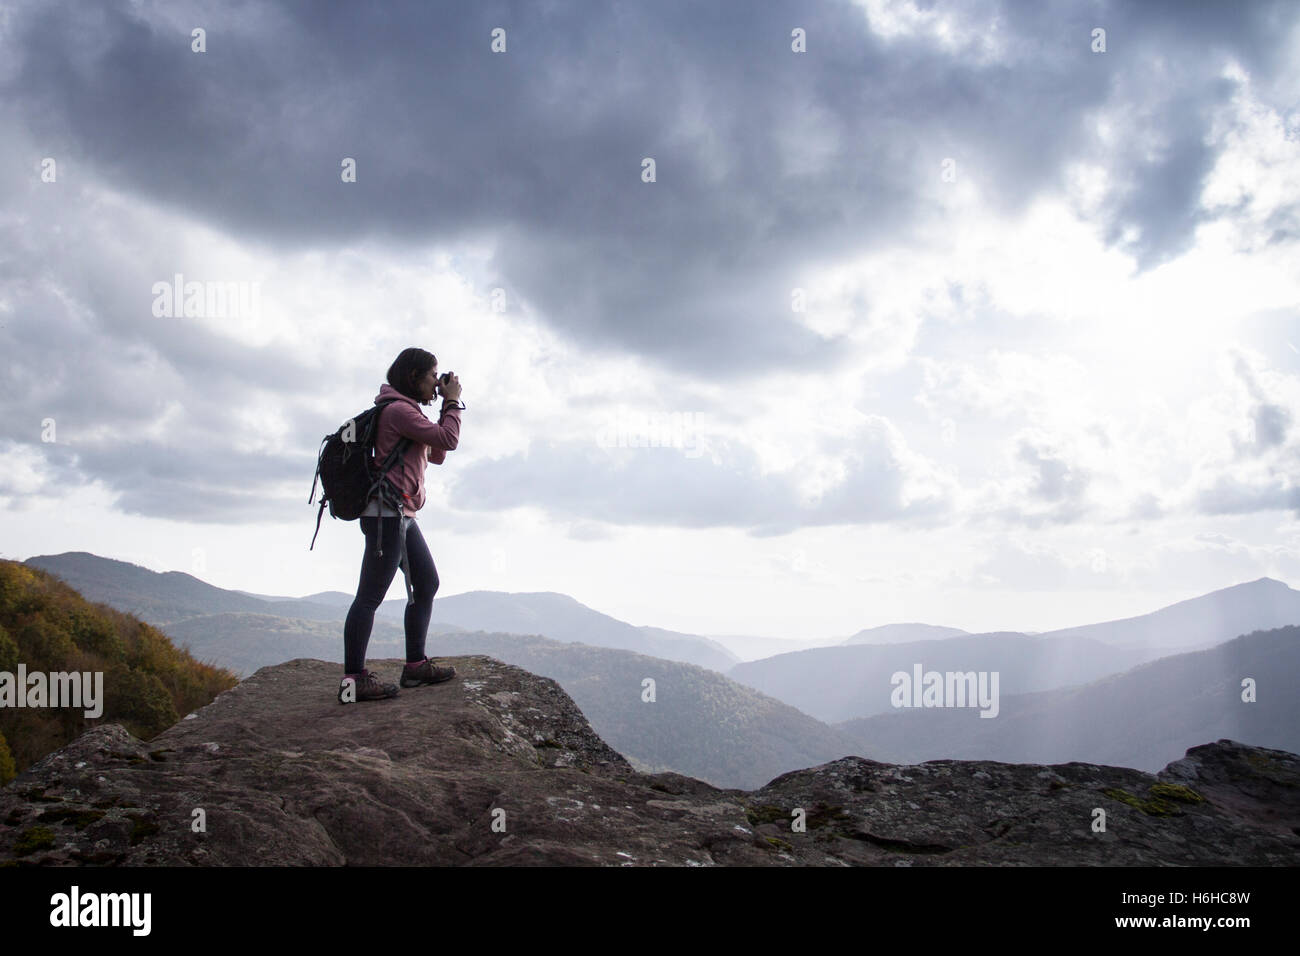 Woman backpacker in Zamariain viewer, Navarre, Spain. - Stock Image